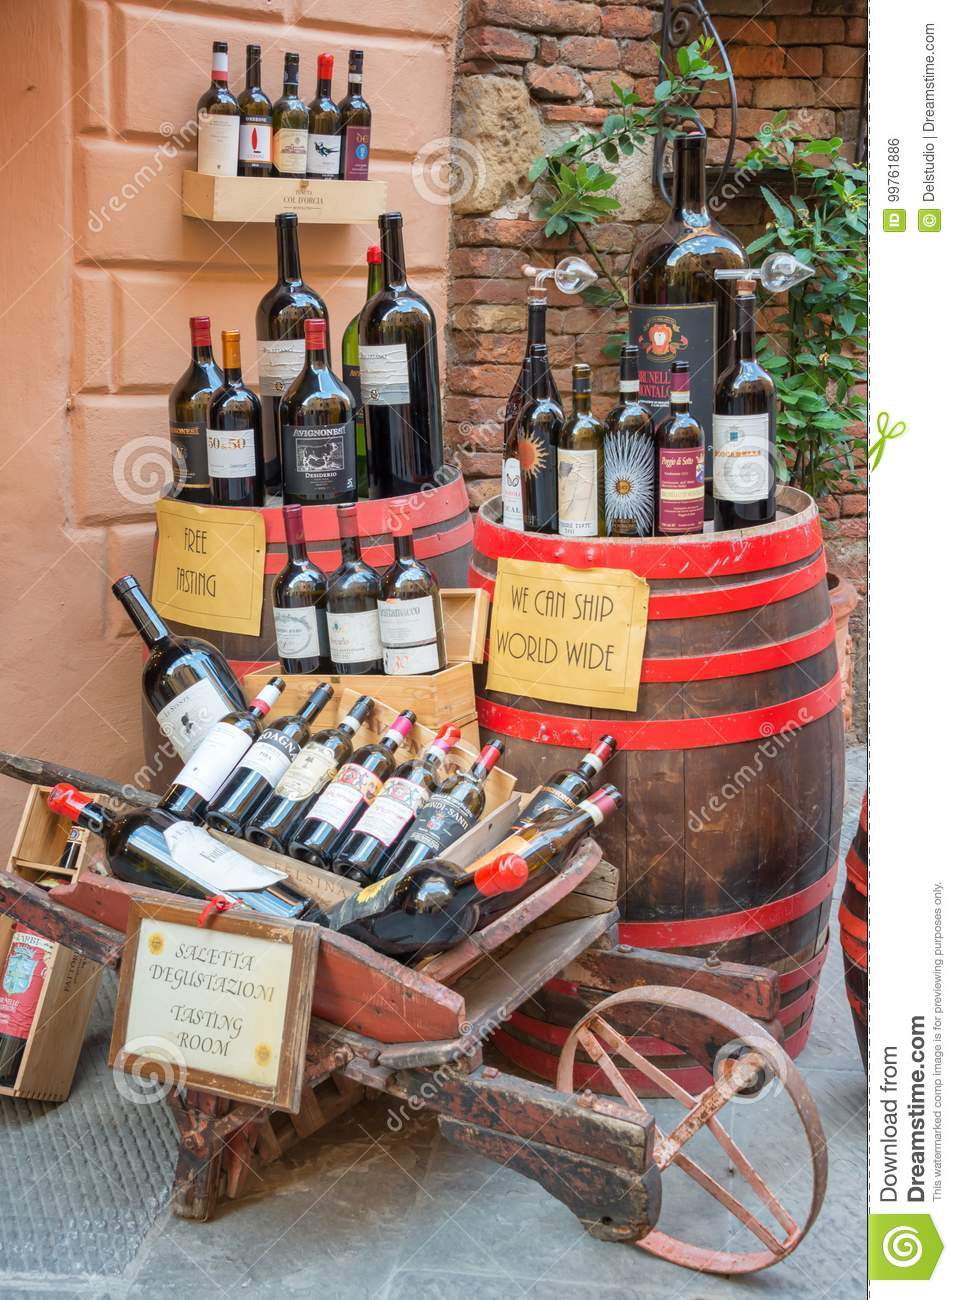 Bottles of Vino Nobile, the most famous wine from Montepulciano, on display outside a winery, on July 21, 2017, in Montpulciano,